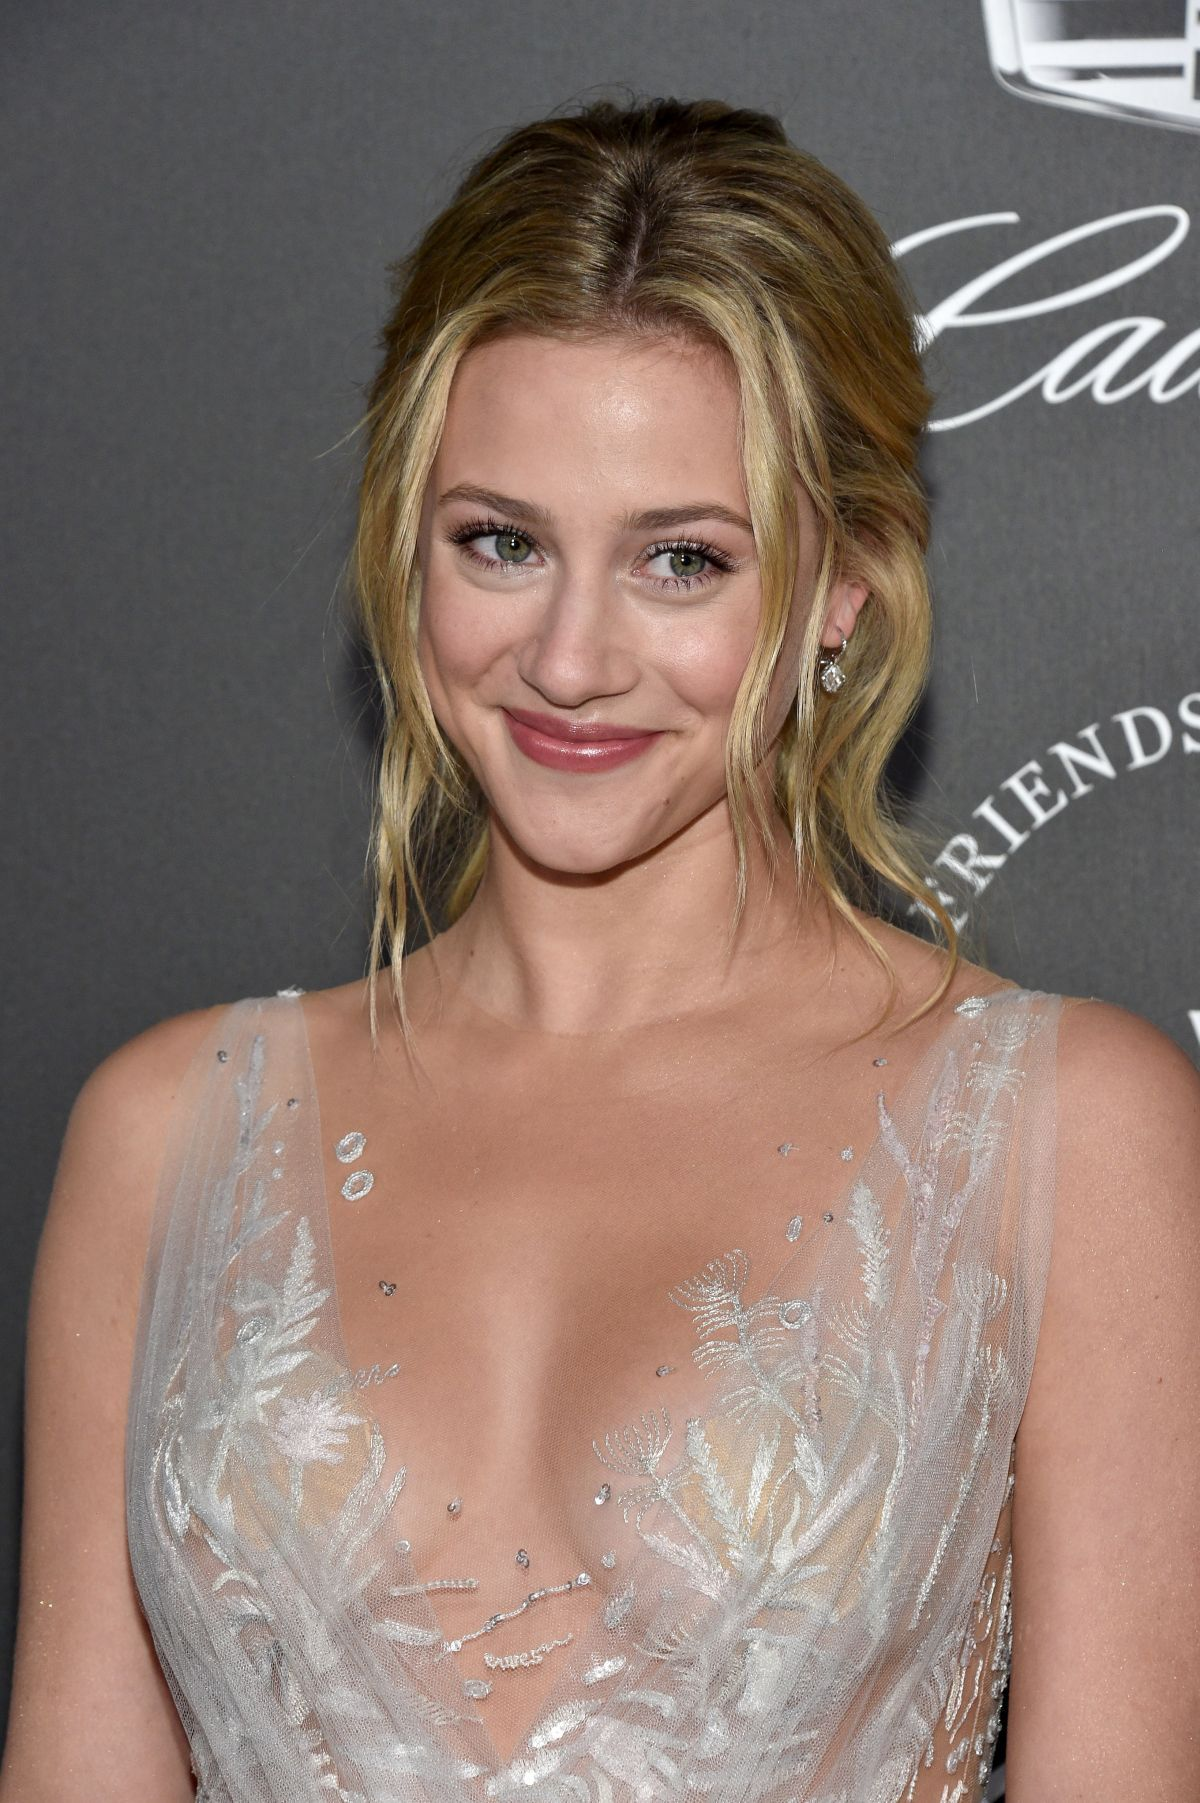 Lili Reinhart Wears Beladora Earrings To The Art Of